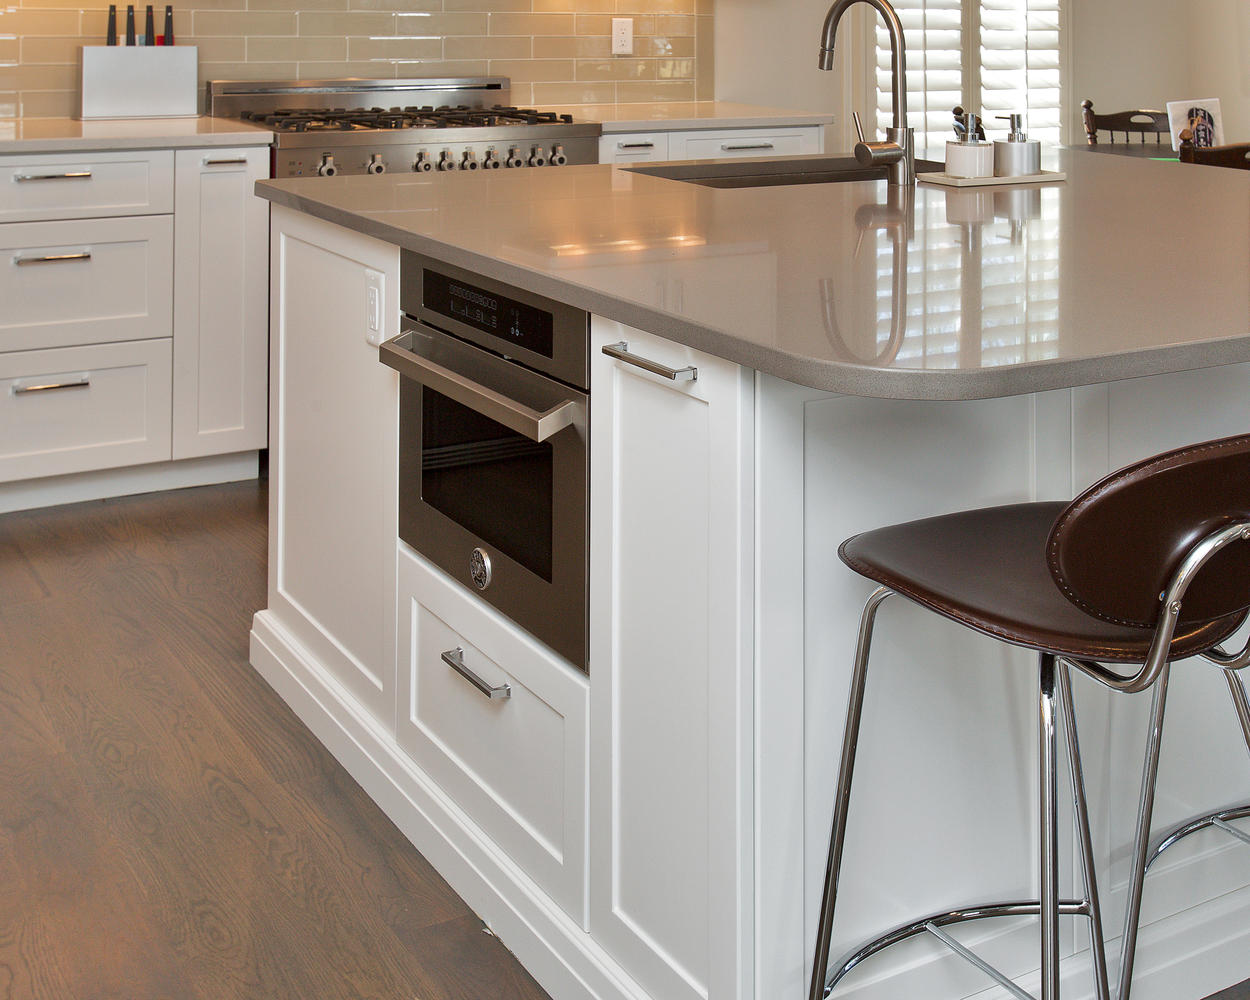 Clean and contemporary kitchen manasquan new jersey by design line kitchens - Design line kitchens ...